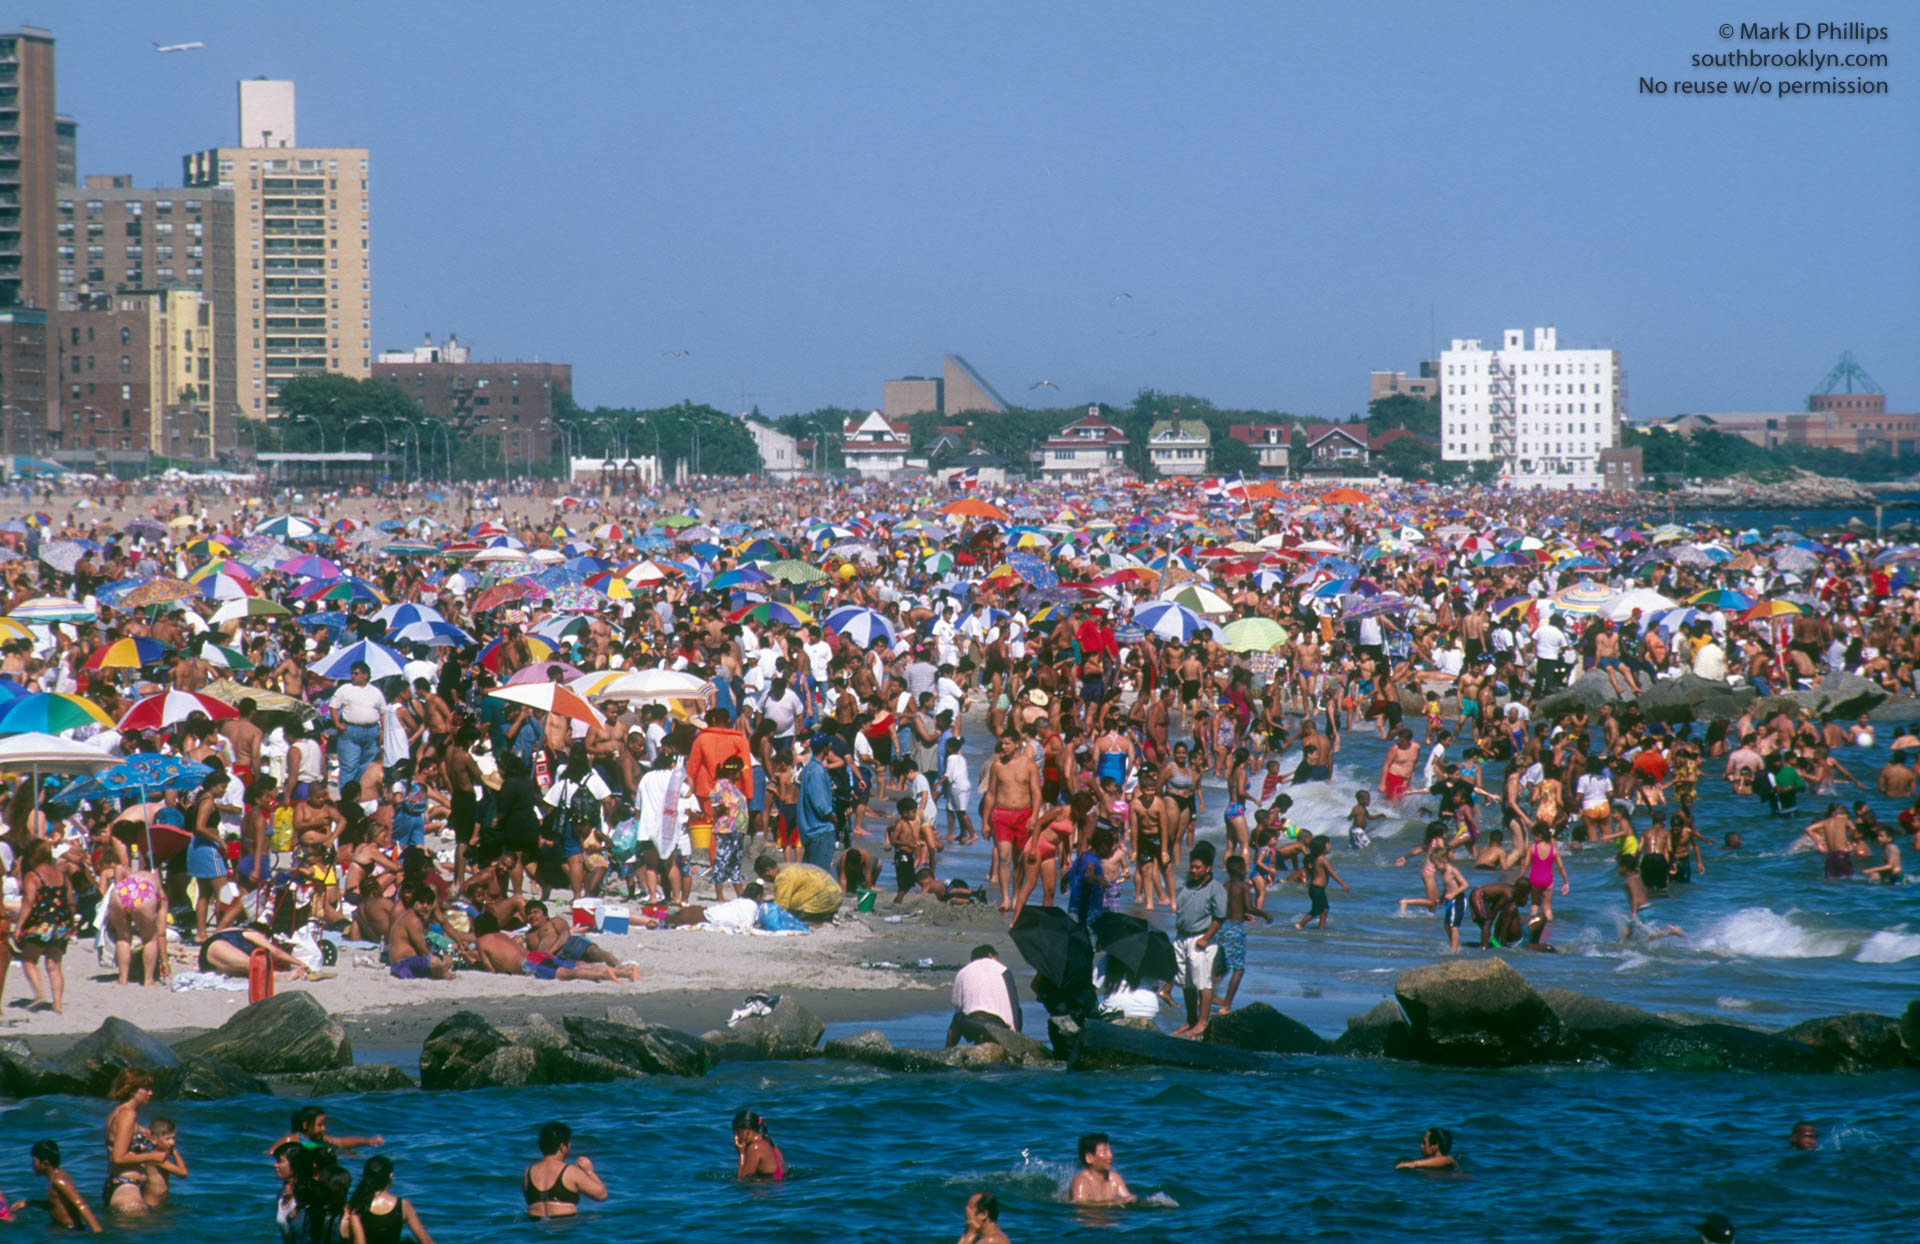 Fourth of July on the beach at Coney Island in 1990. ©Mark D Phillips